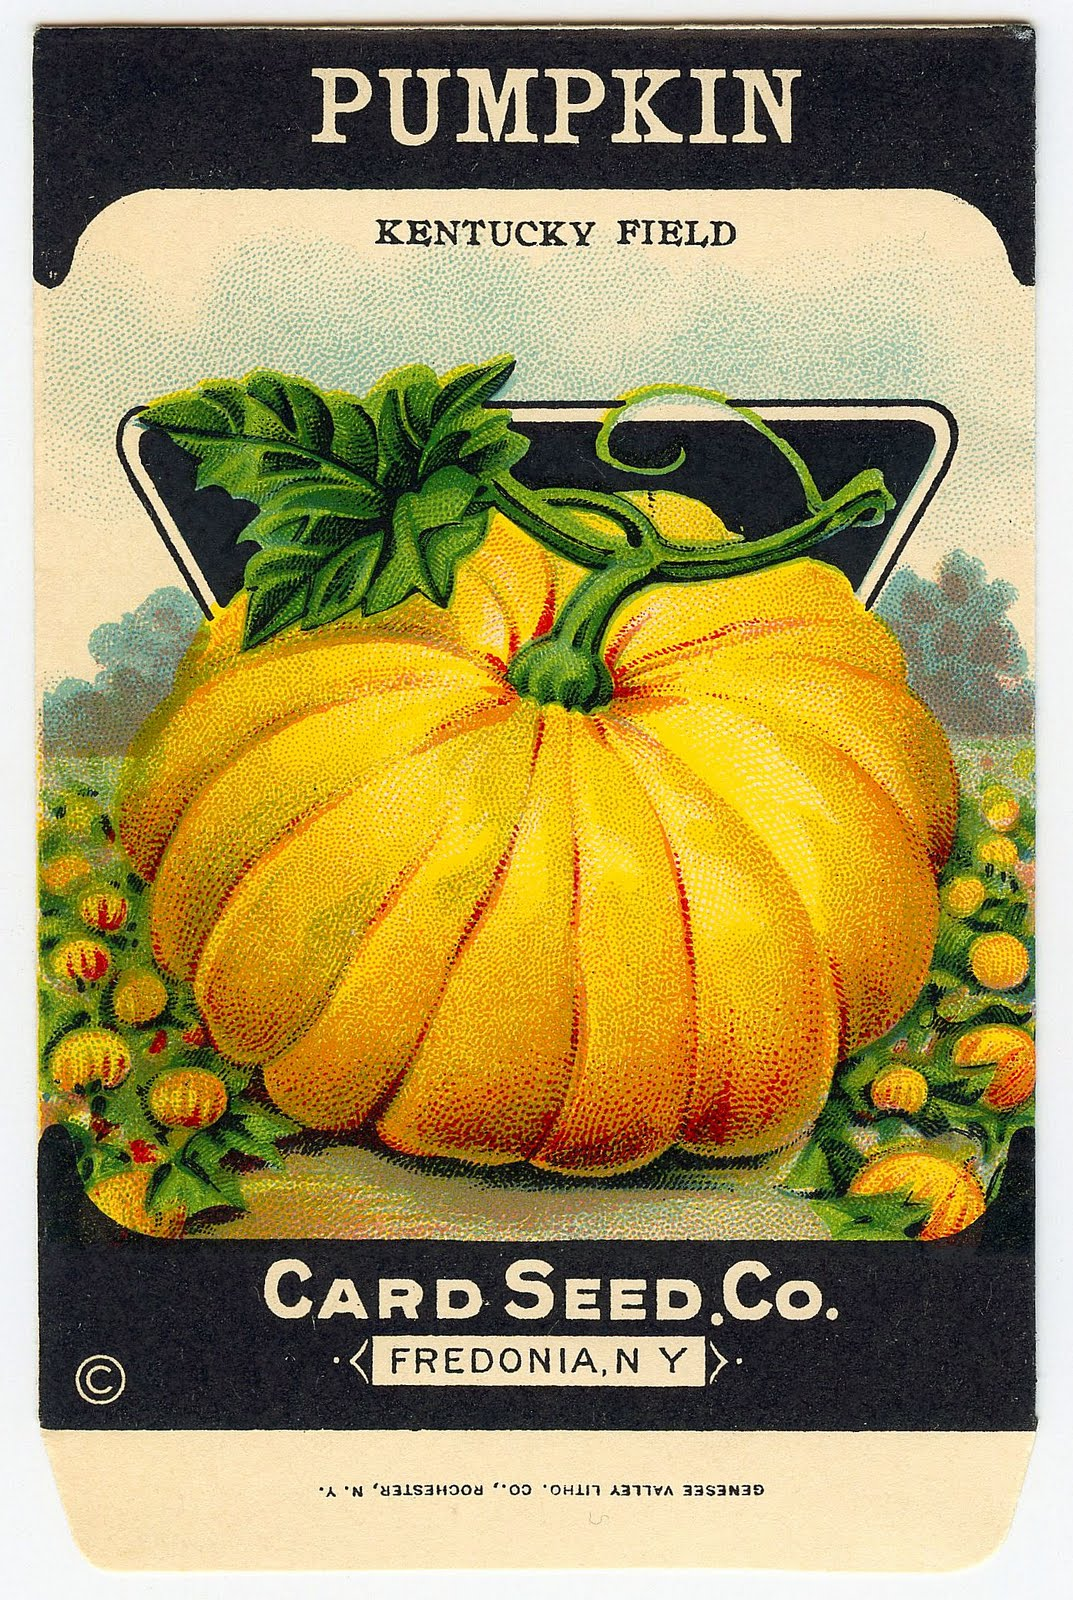 Vintage Clip Art Adorable Pumpkin Seed Packet